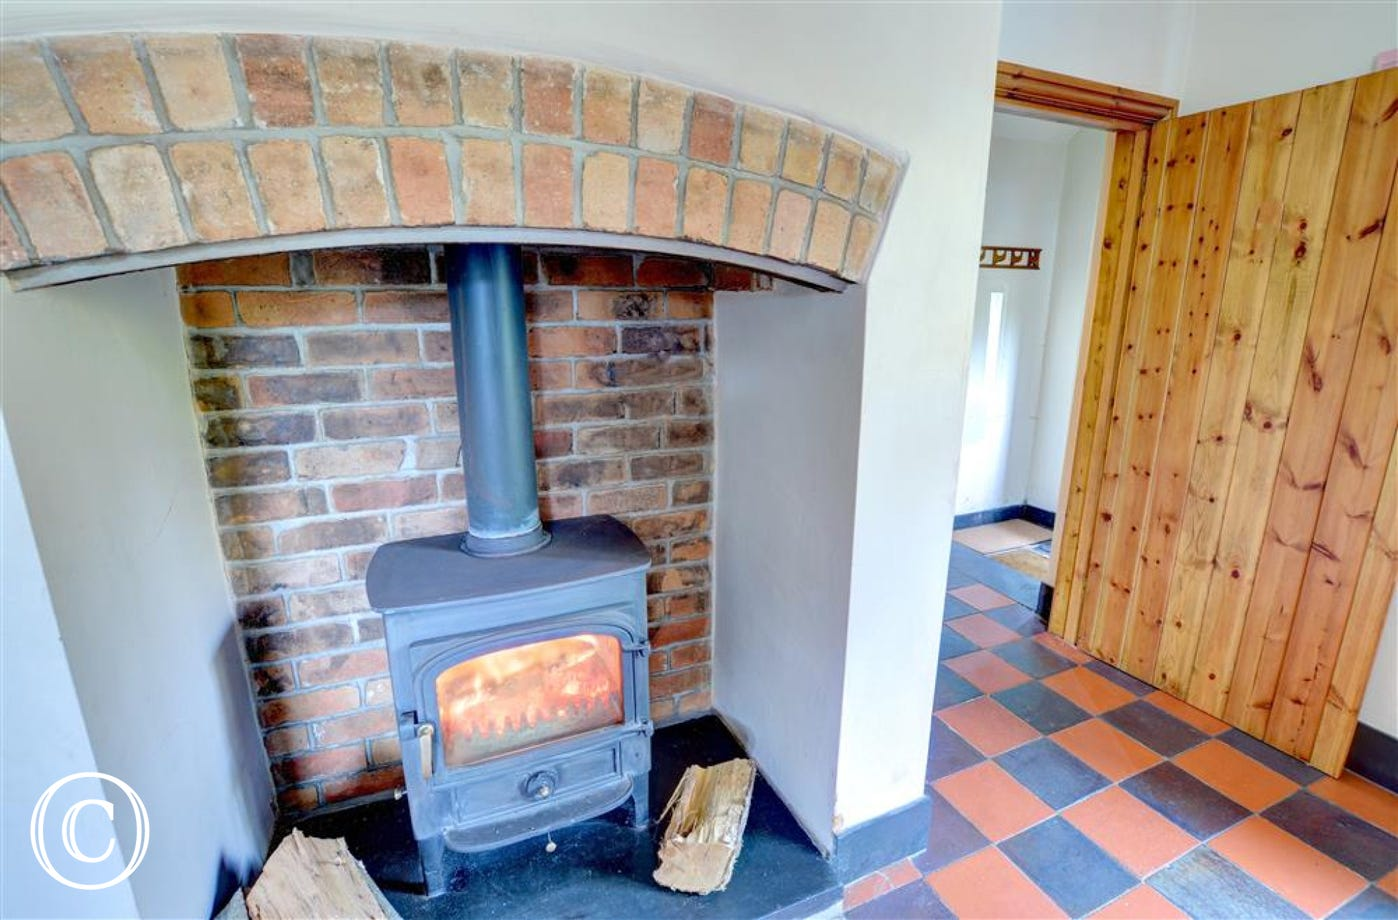 The kitchen's attractive brick fireplace has a woodburning stove